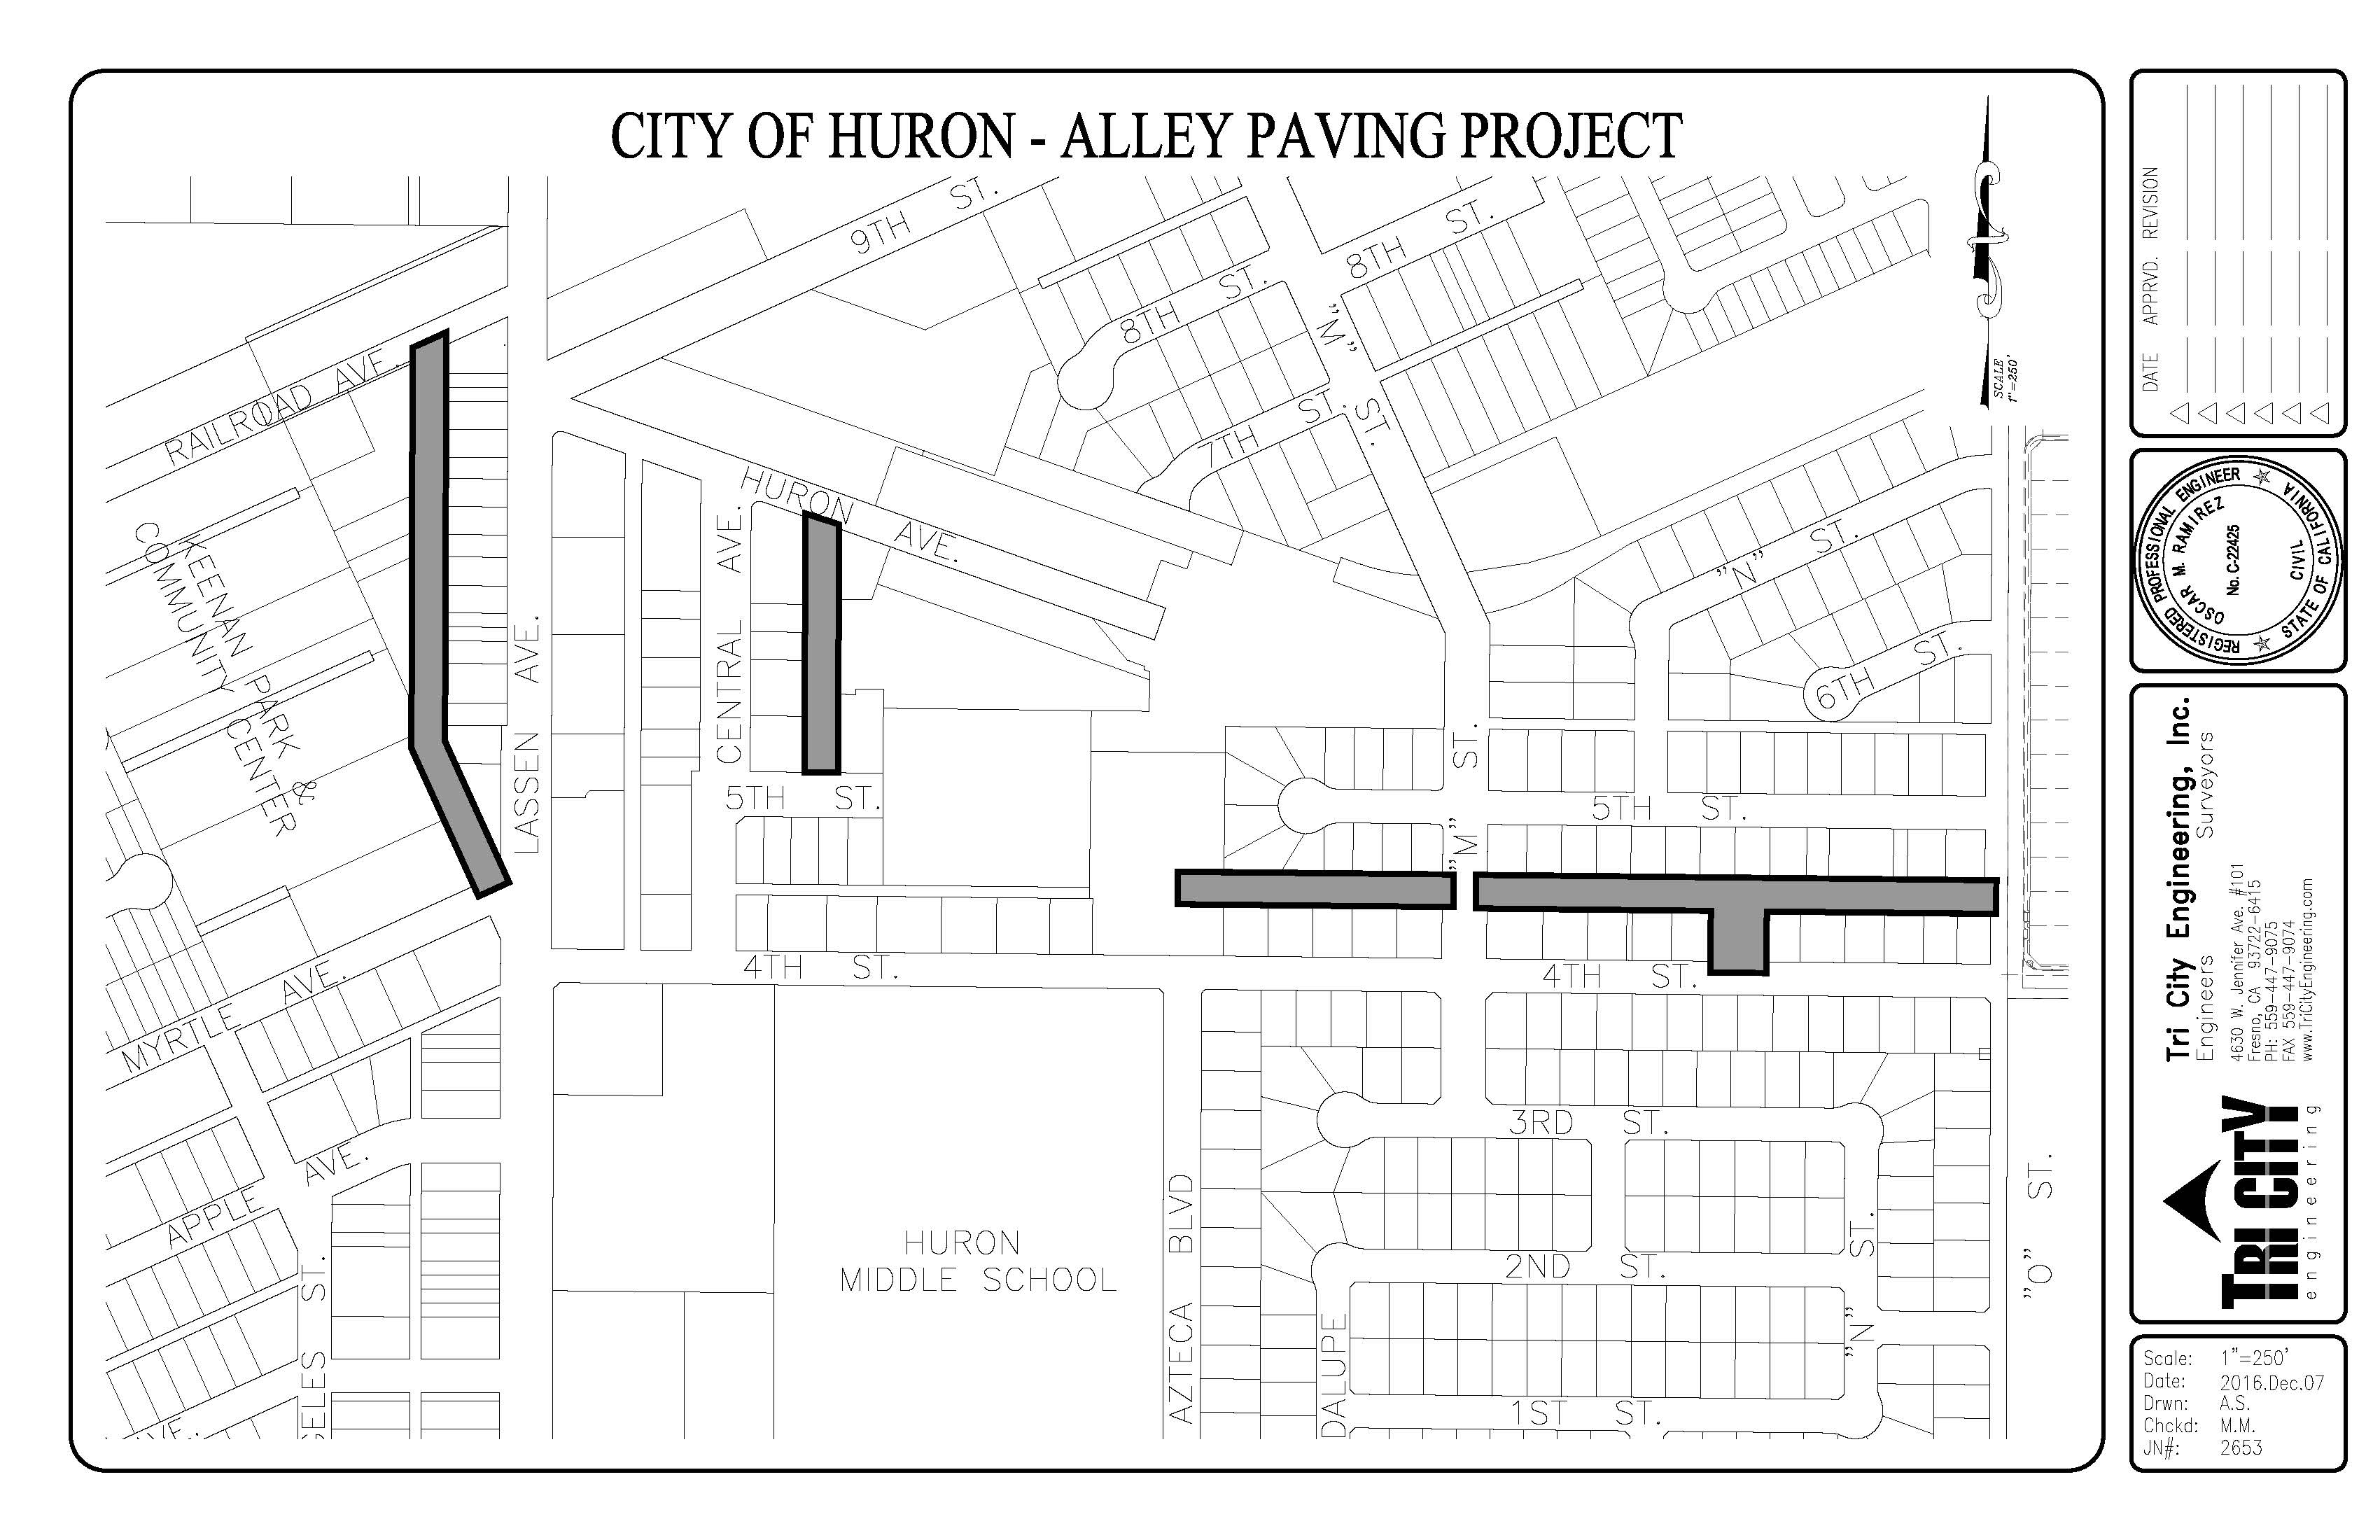 Alley Paving Project (CMAQ)